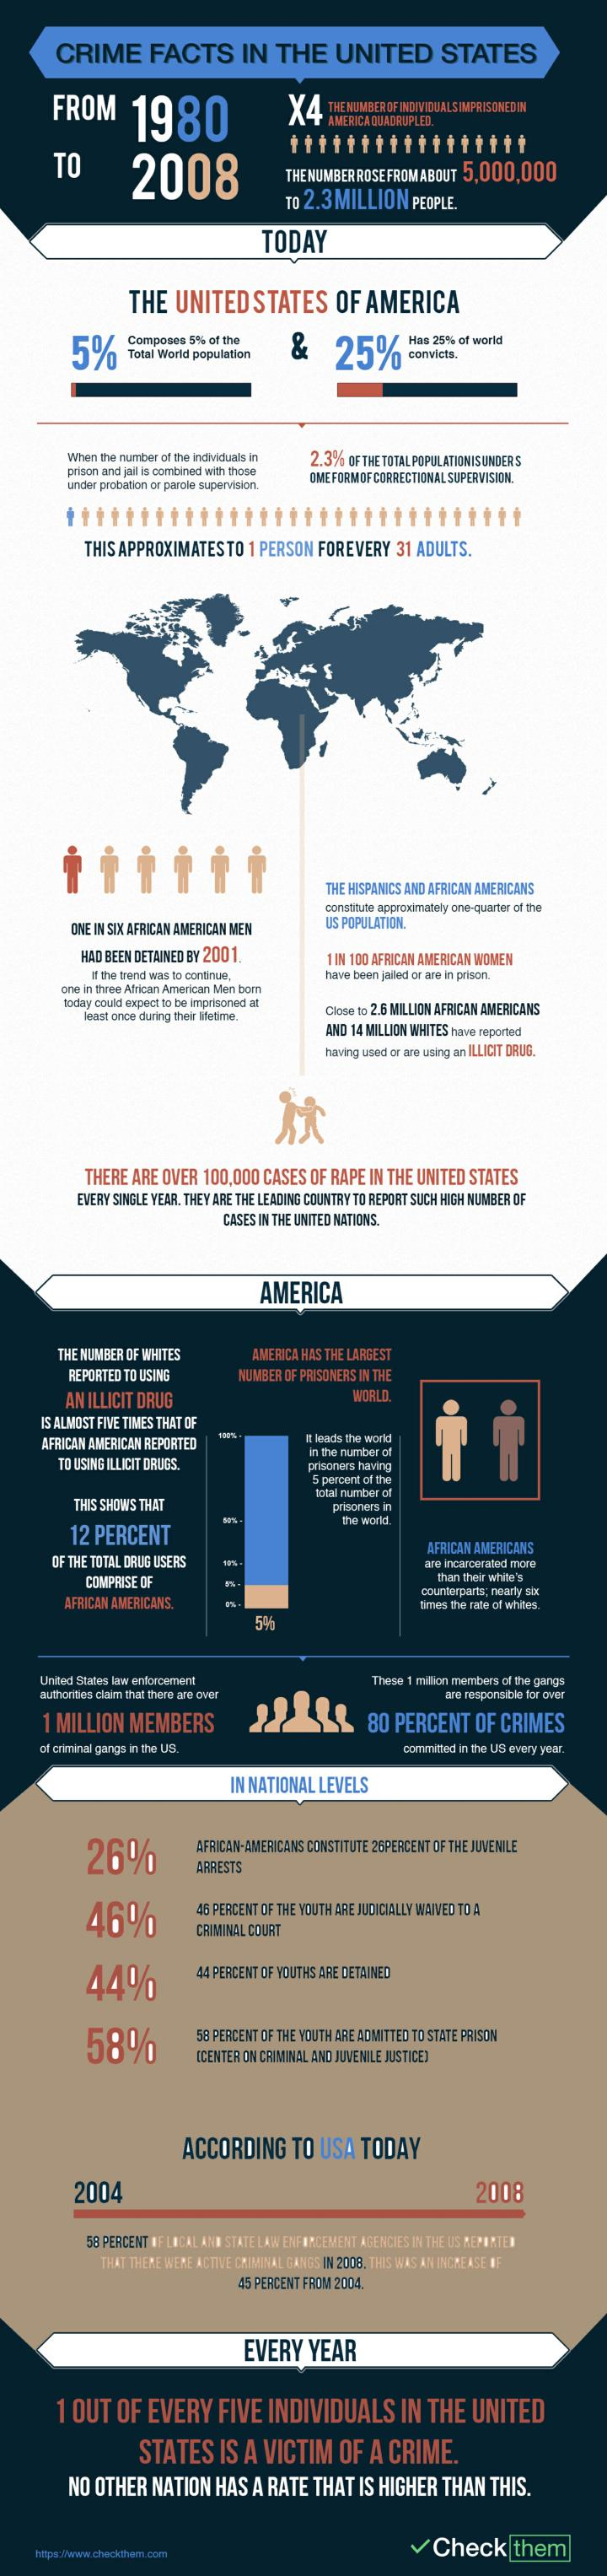 Crime facts in the united states